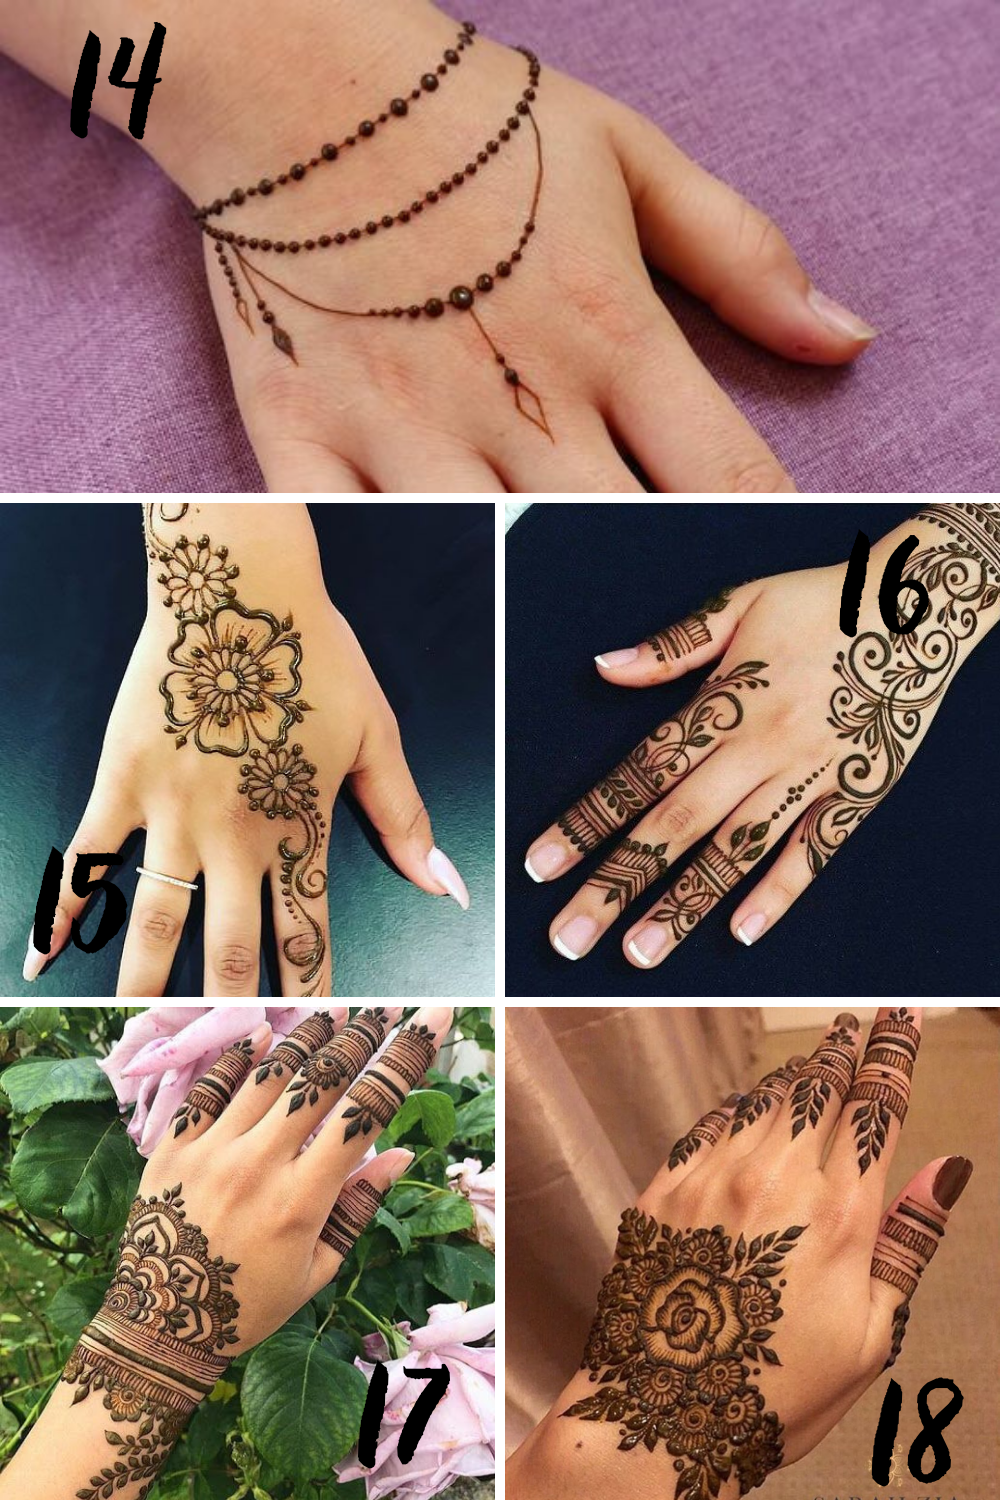 Henna Tattoo Inspiration For Weddings